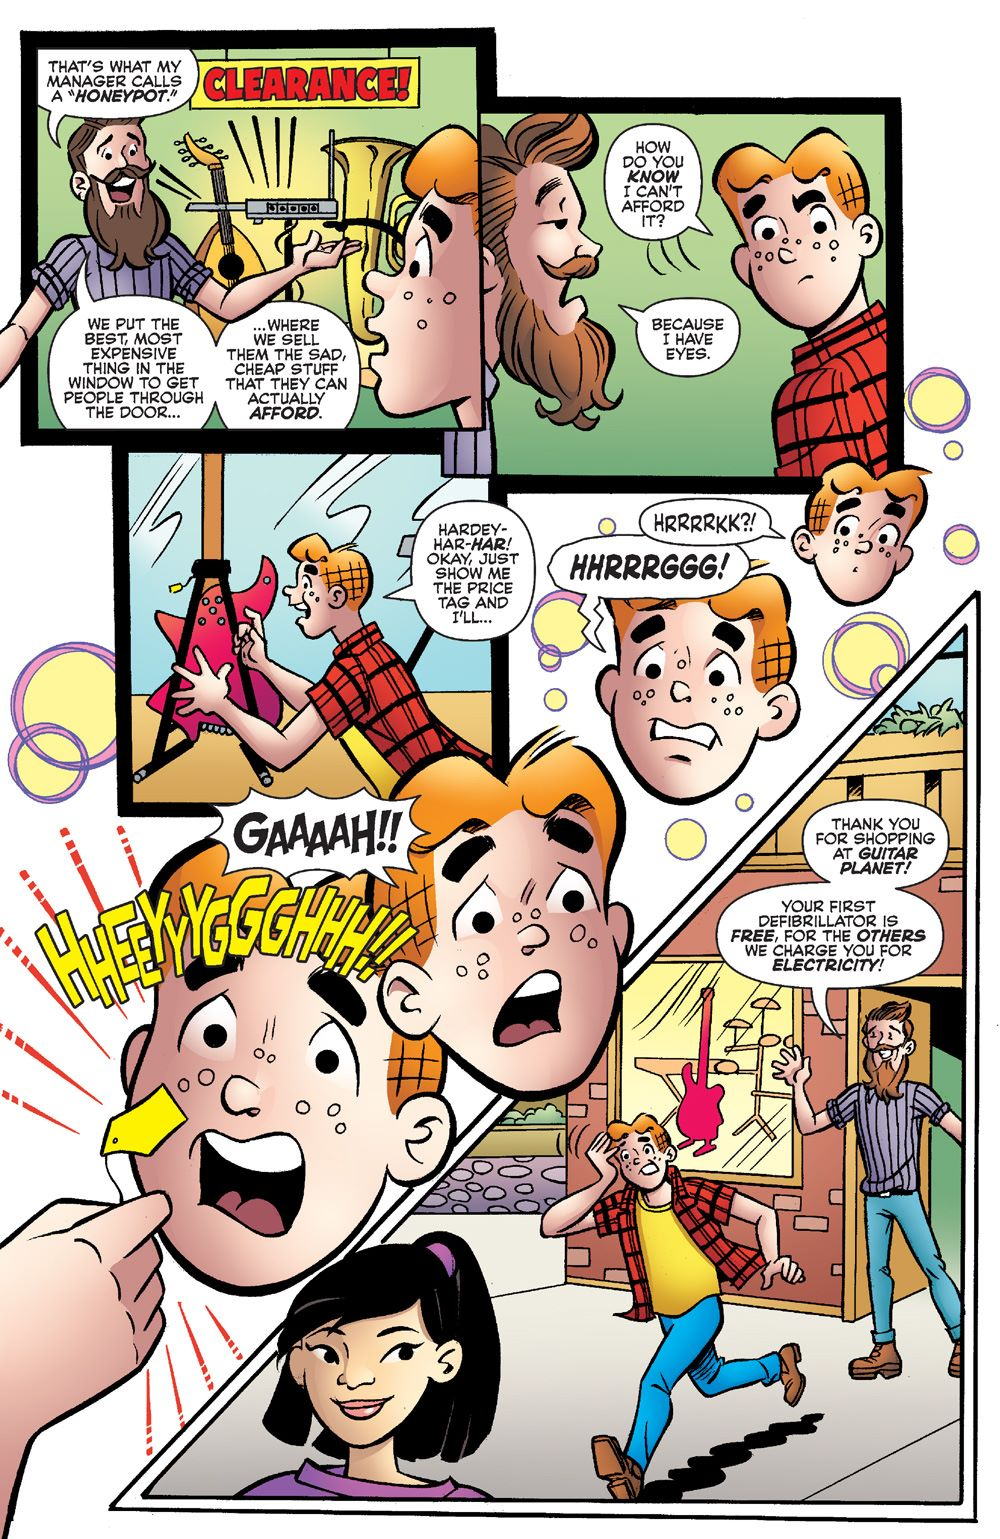 EverythingsArchie_01-4 ComicList Previews: ARCHIE 80TH ANNIVERSARY EVERYTHING'S ARCHIE #1